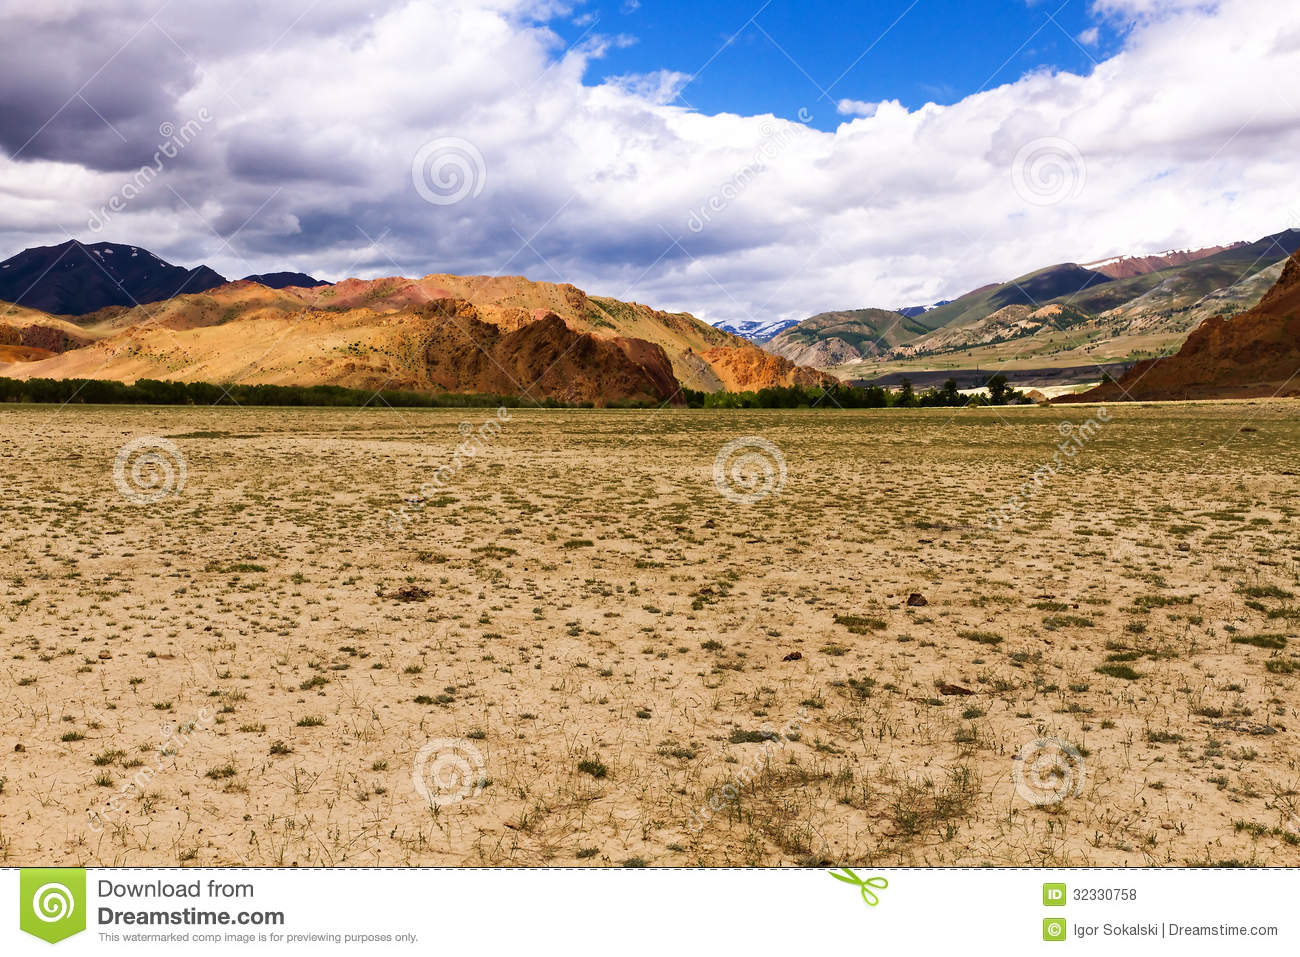 Landscape Steppe Mountains Royalty Free Stock Photos.